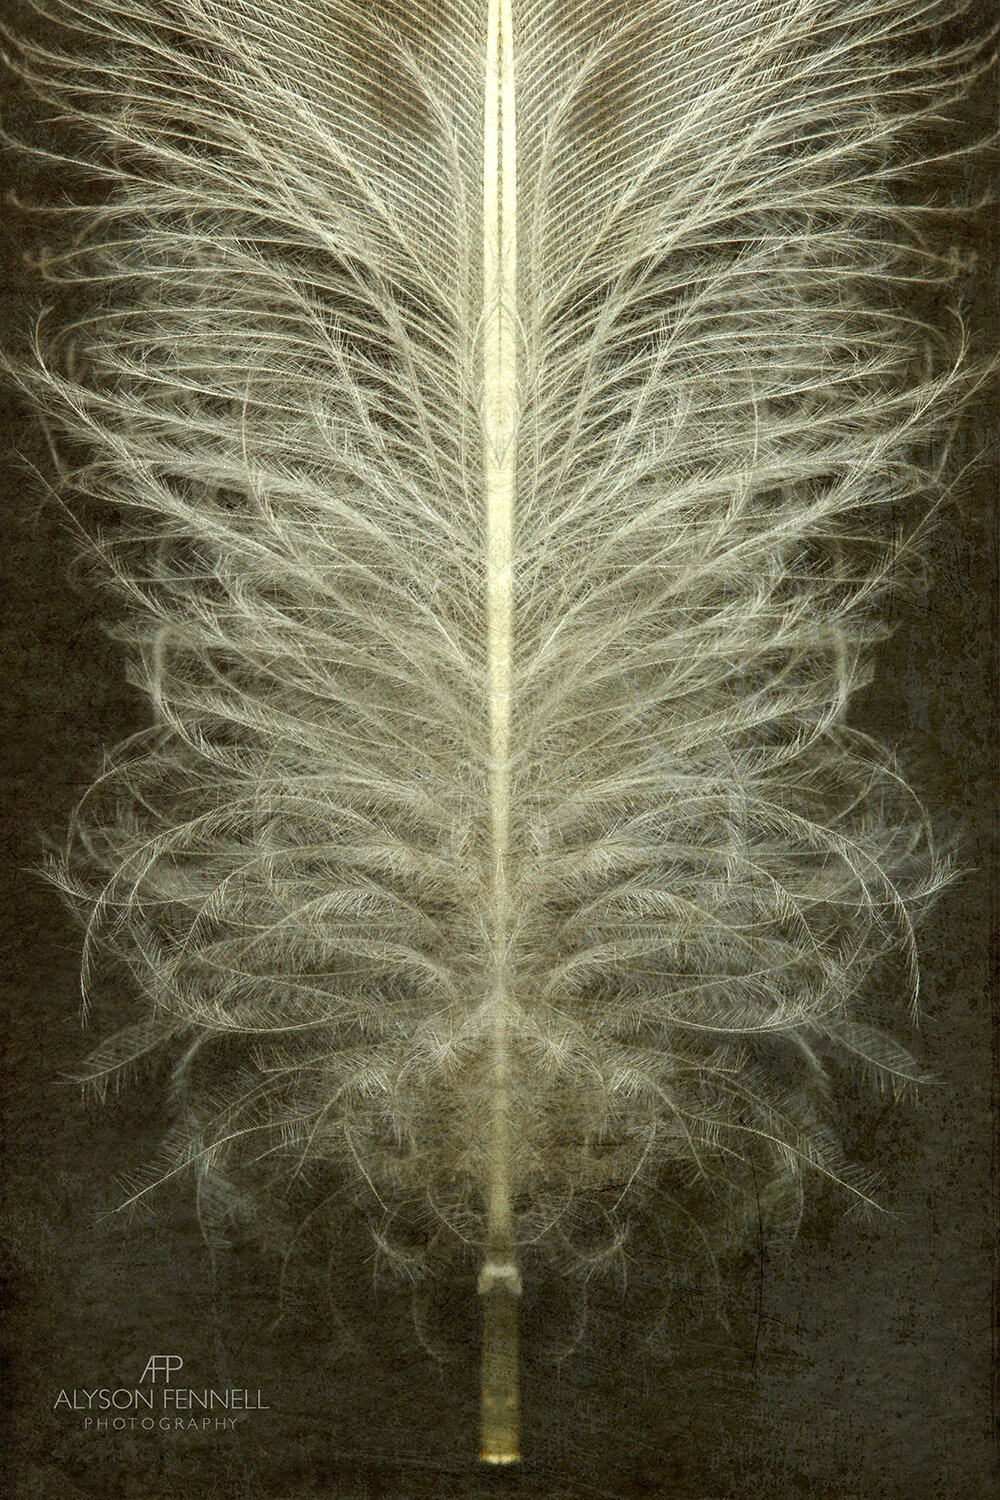 Duck Feather Symmetry